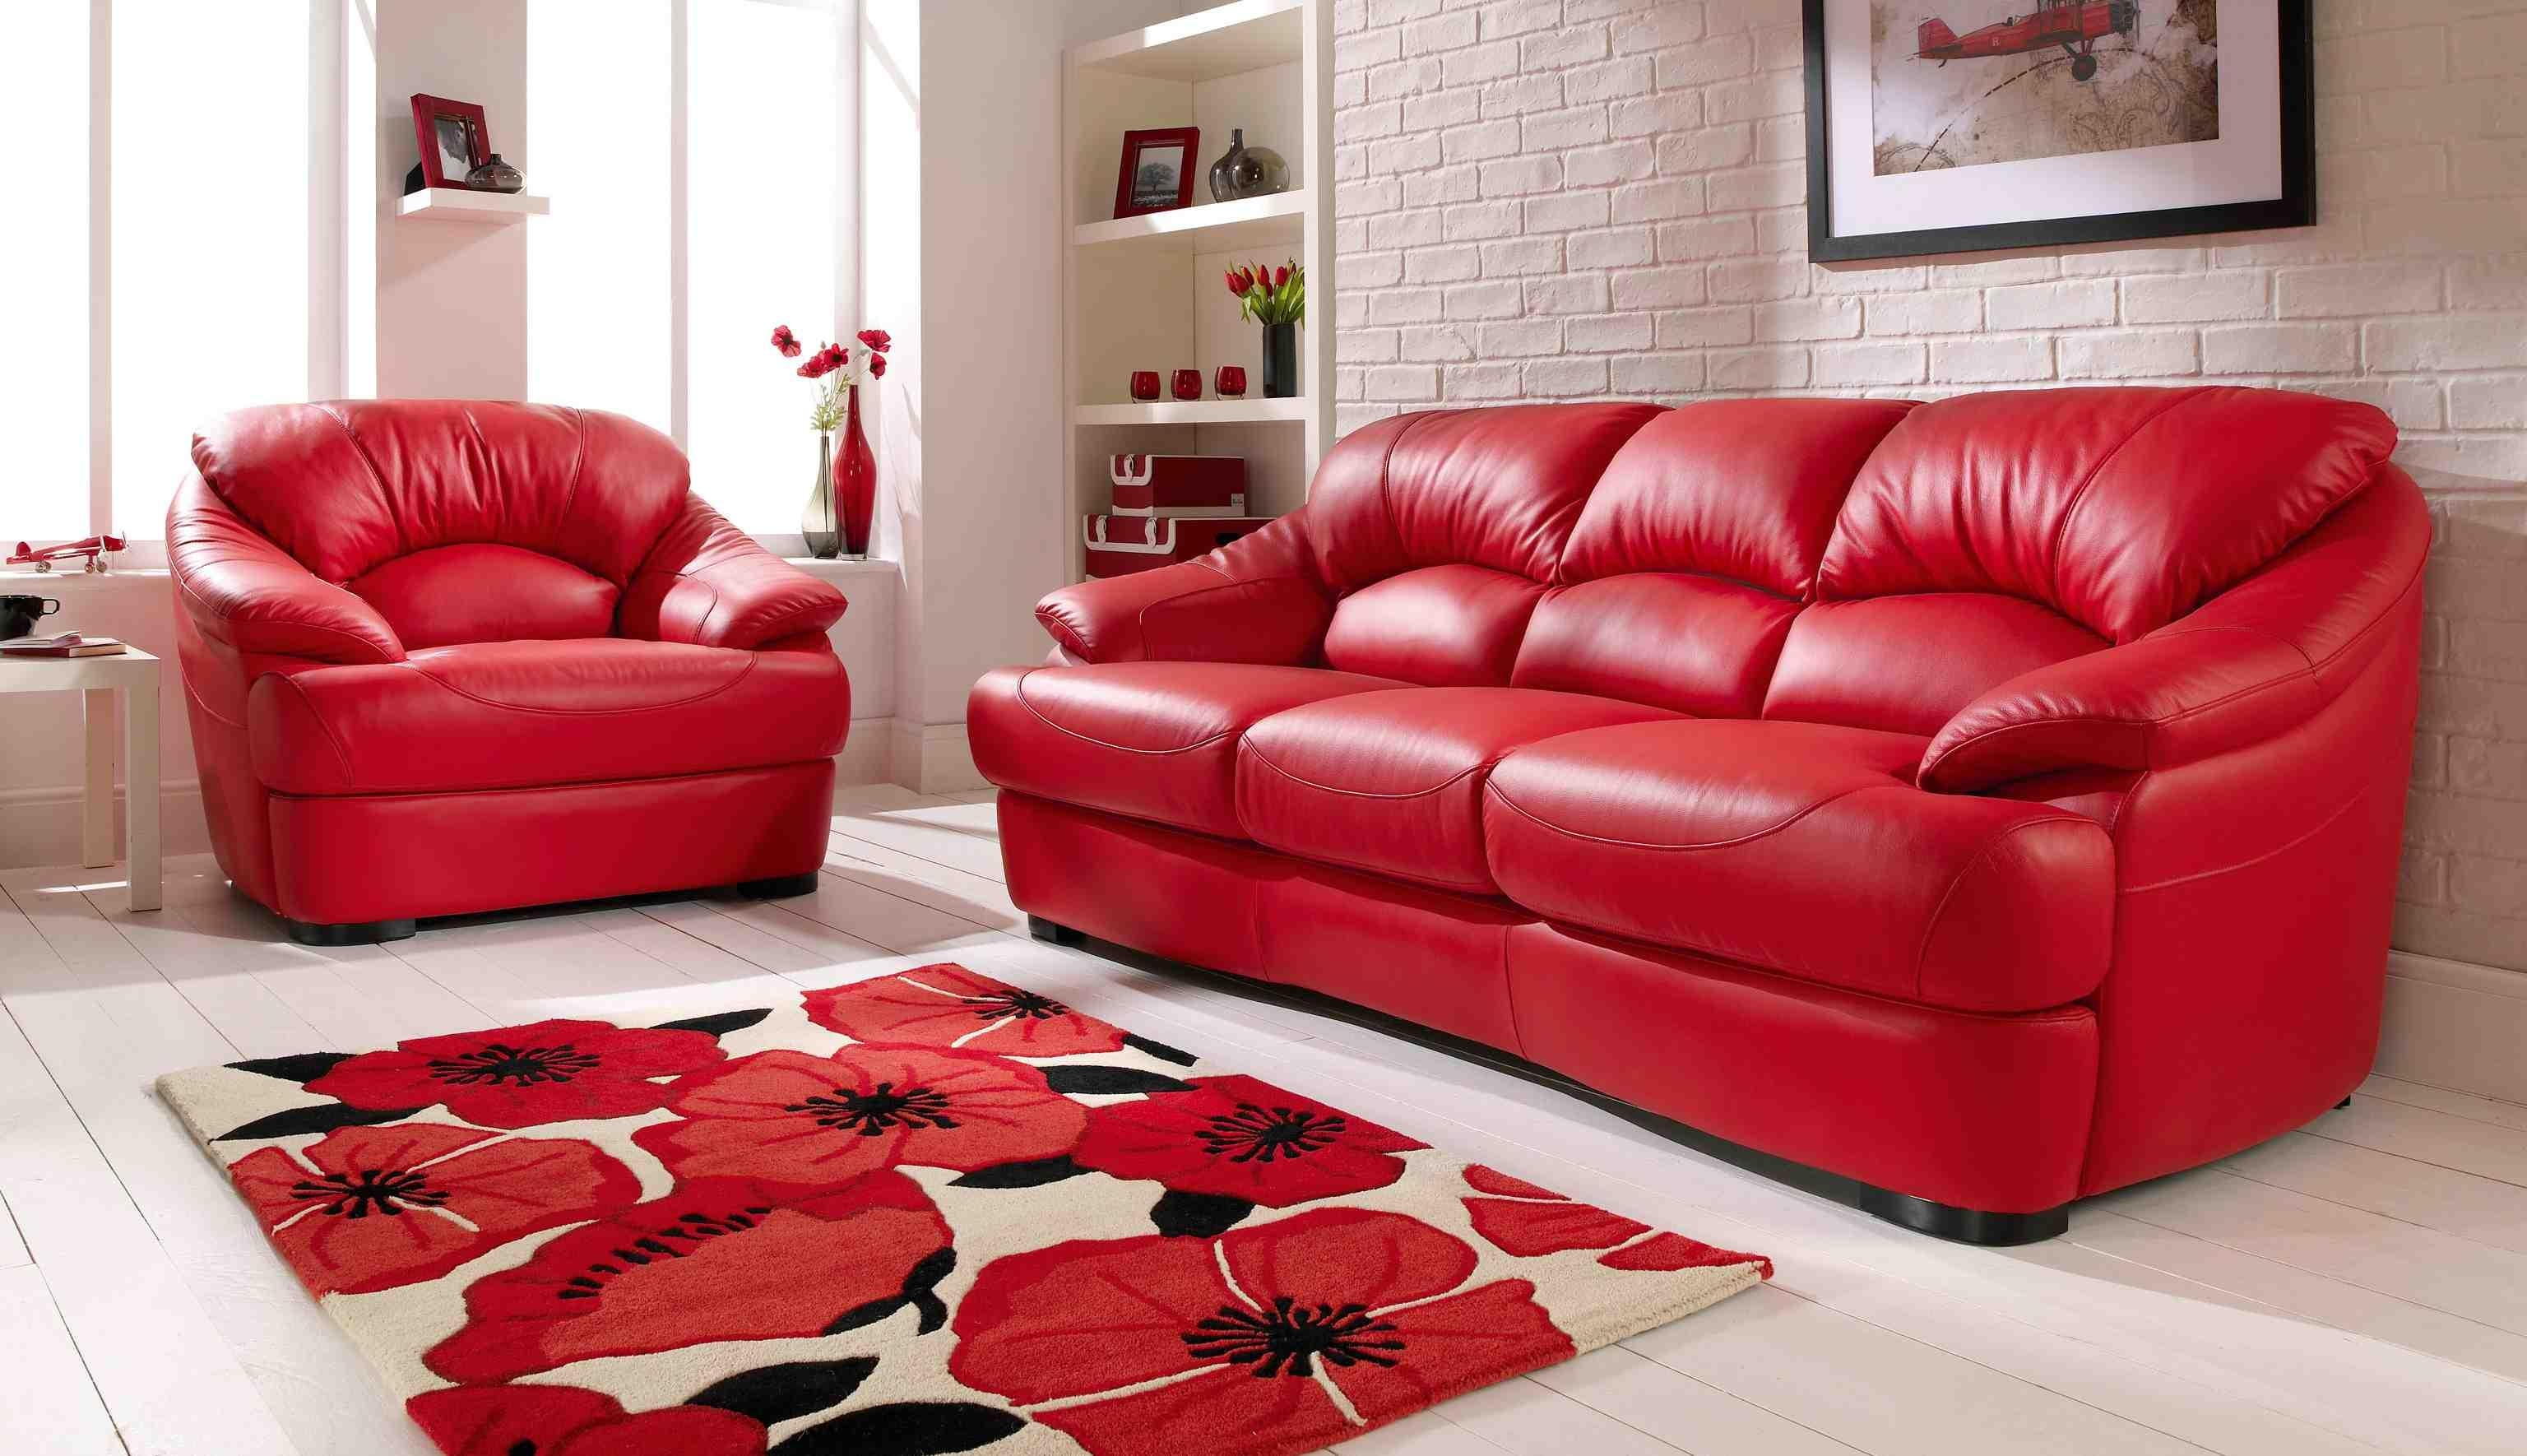 Leather Furniture Decorating Ideas 20 Photos Dark Red Leather Sofas Sofa Ideas